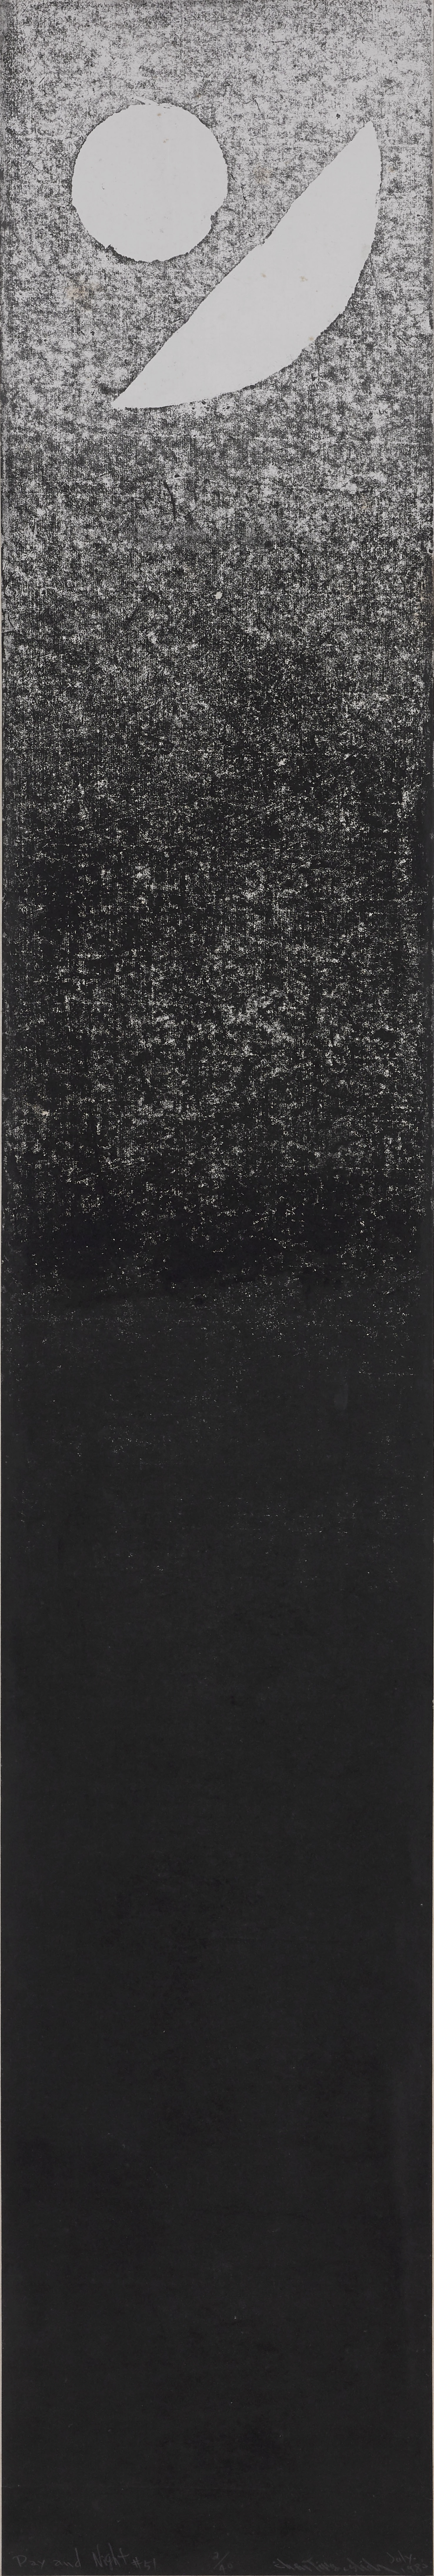 Chen Ting-Shih, Day and Night #51, 181x30.5cm, ed 2:40, woodcut print, 1982.png